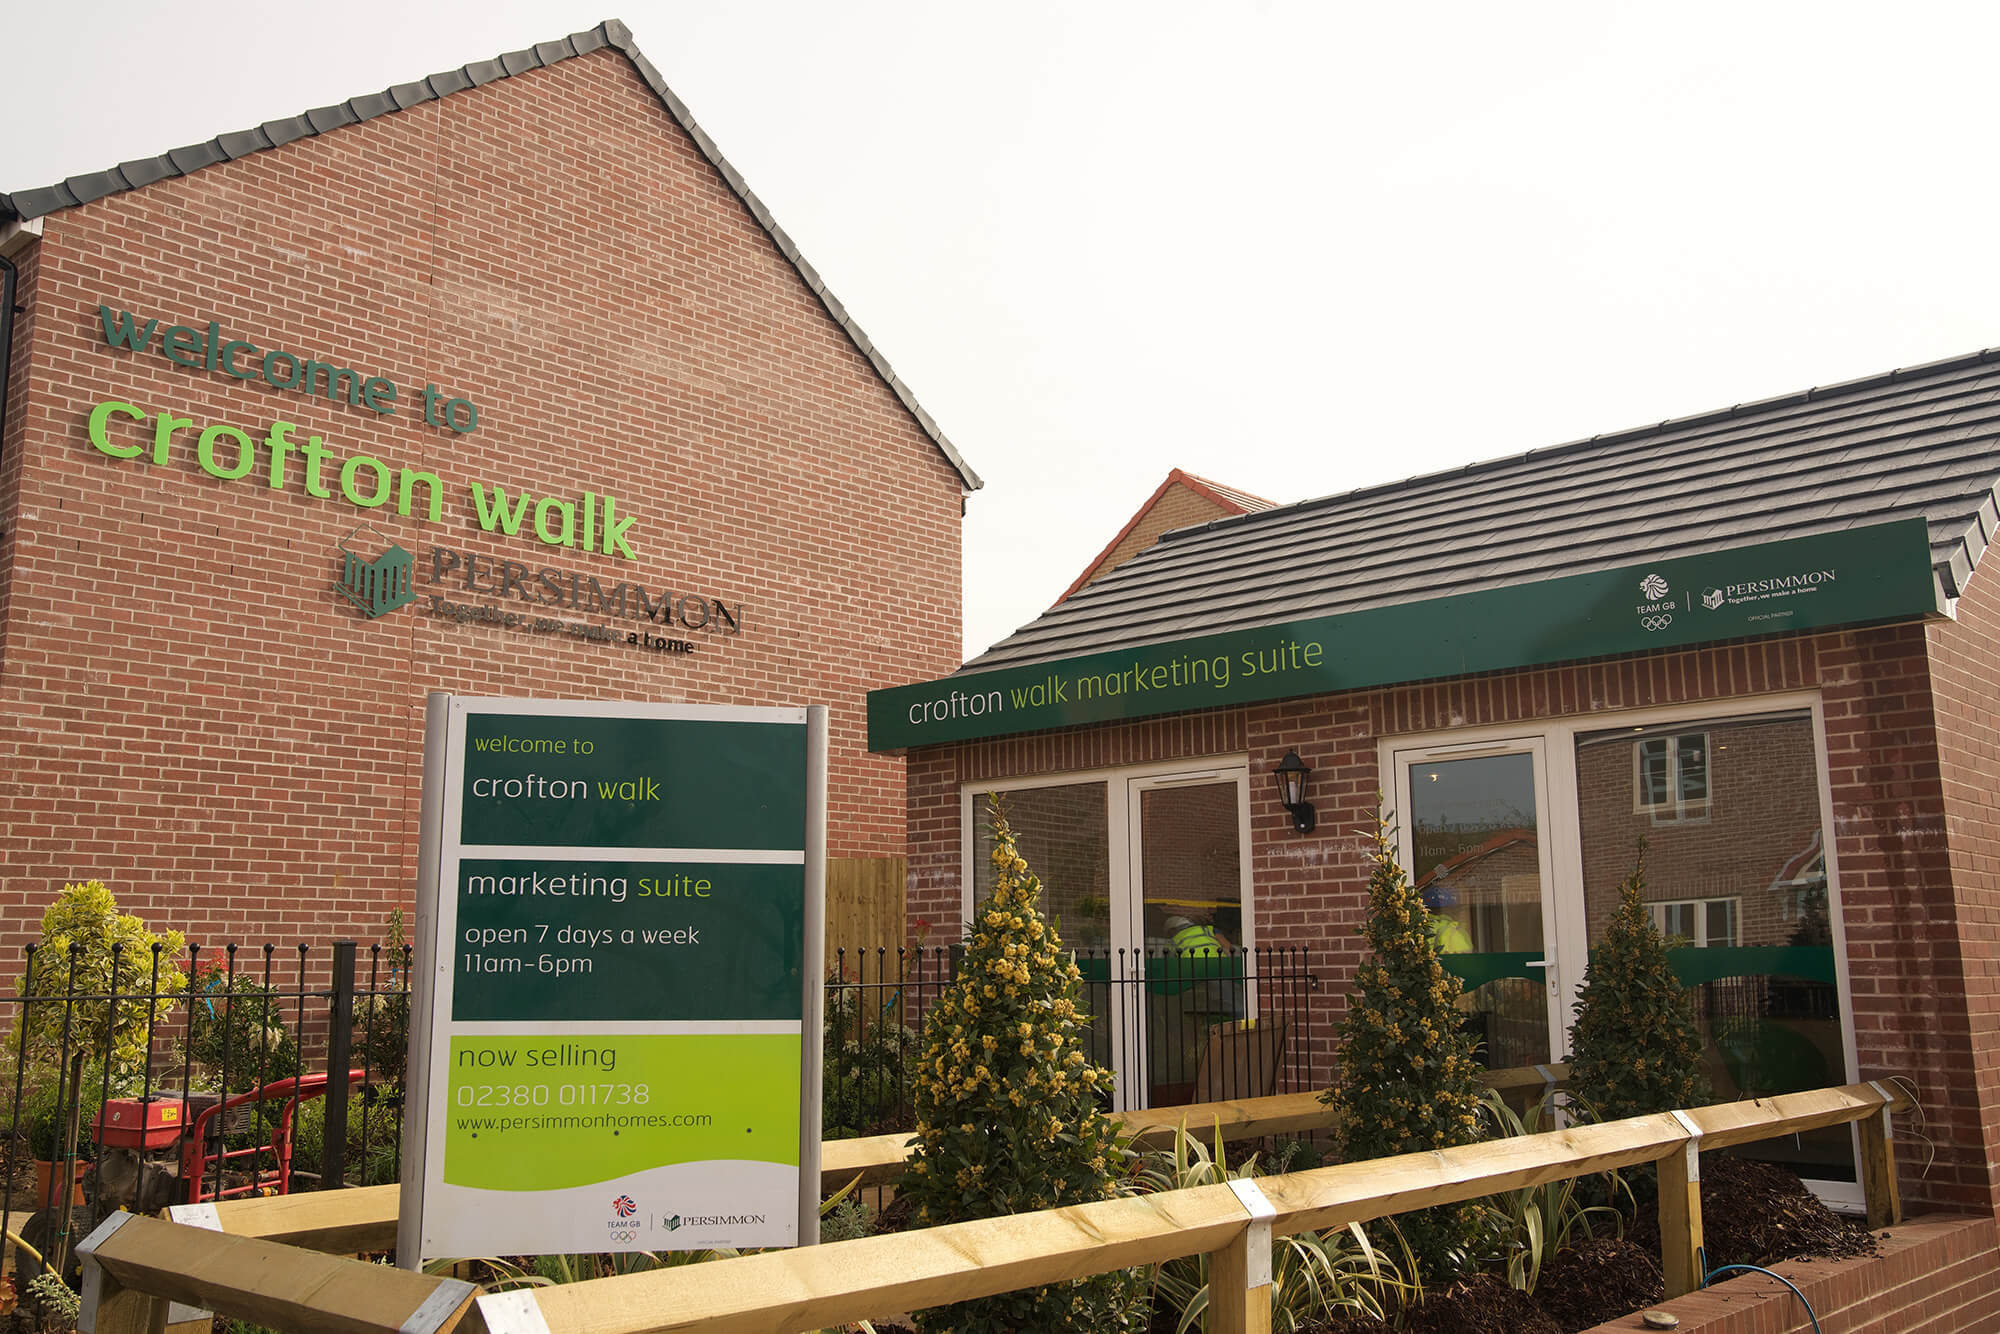 Crofton Walk Marketing Suite